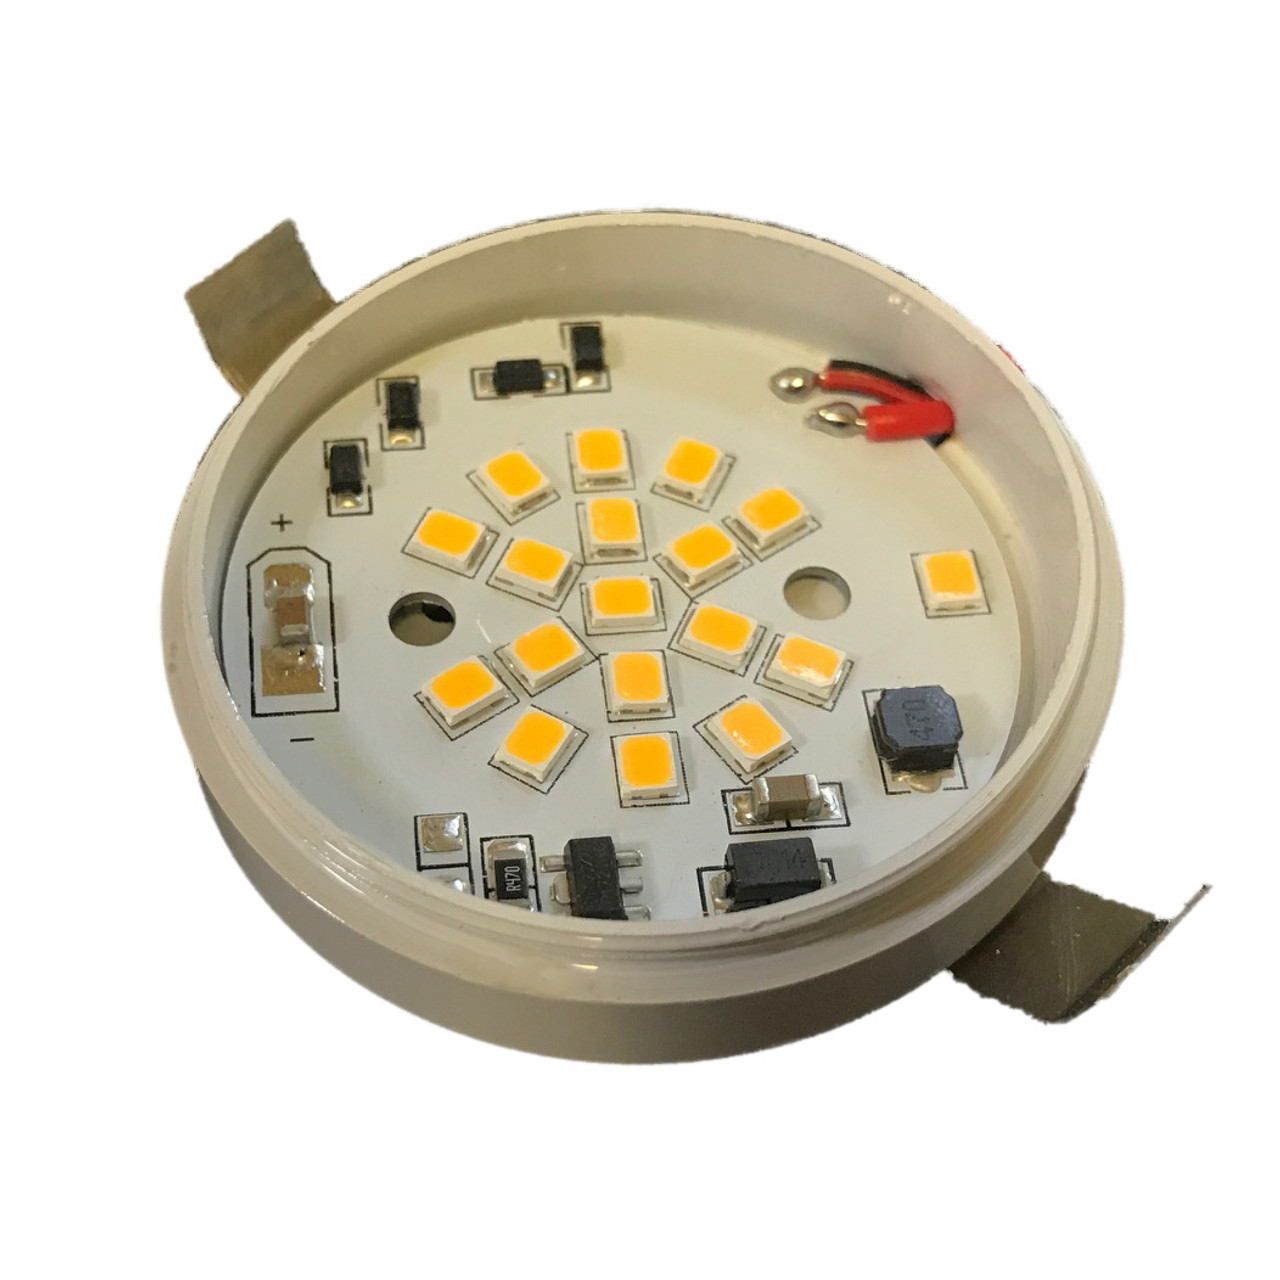 18 High Brightness 2835 LED chips with Constant Current LED Driver.  10-30VDC and dimmable